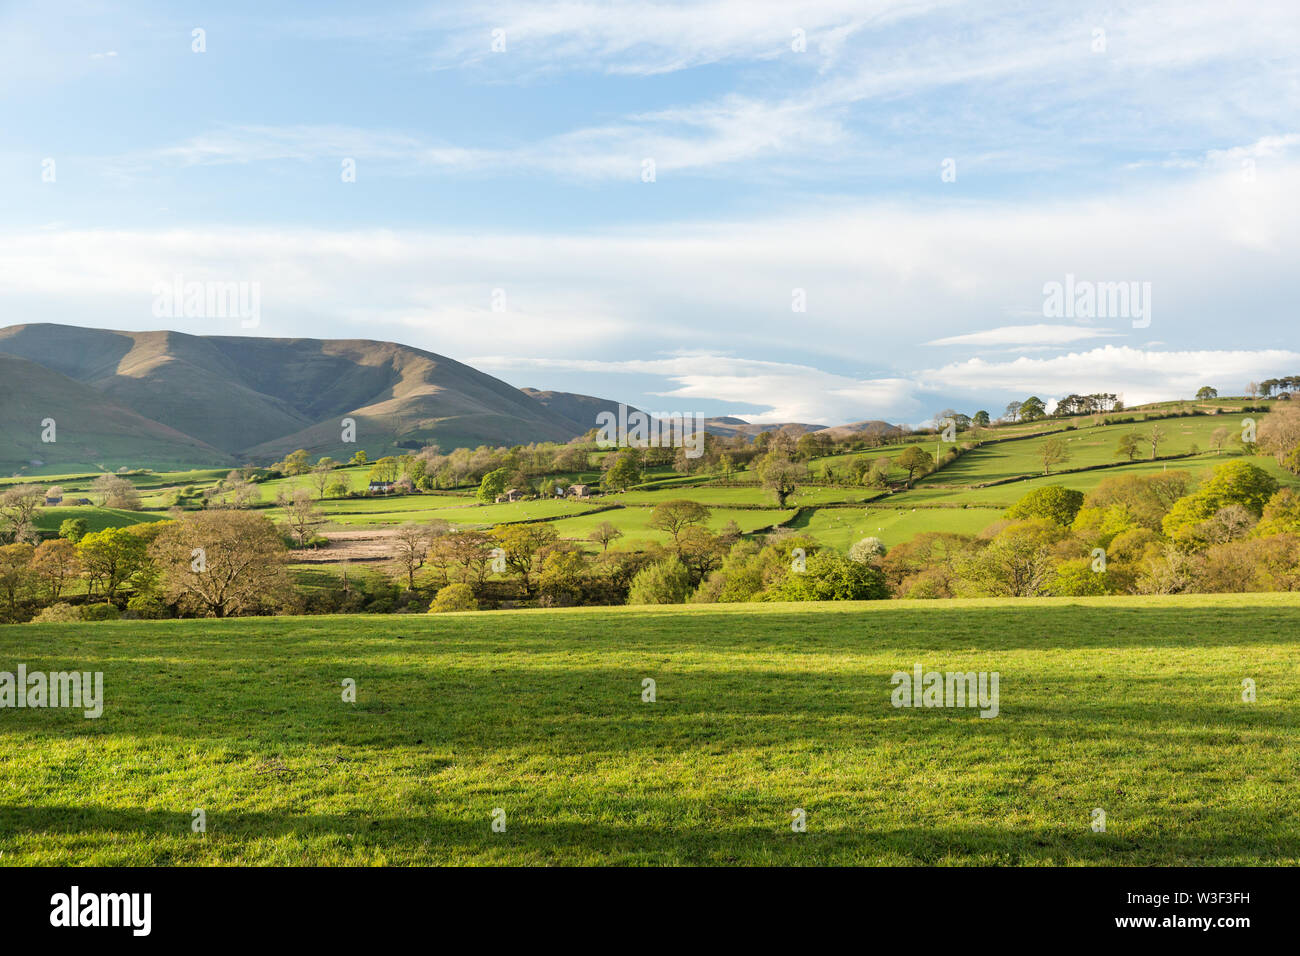 View of the Howgill Fells in the Yorkshire Dales National Park on a sunny day. Stock Photo